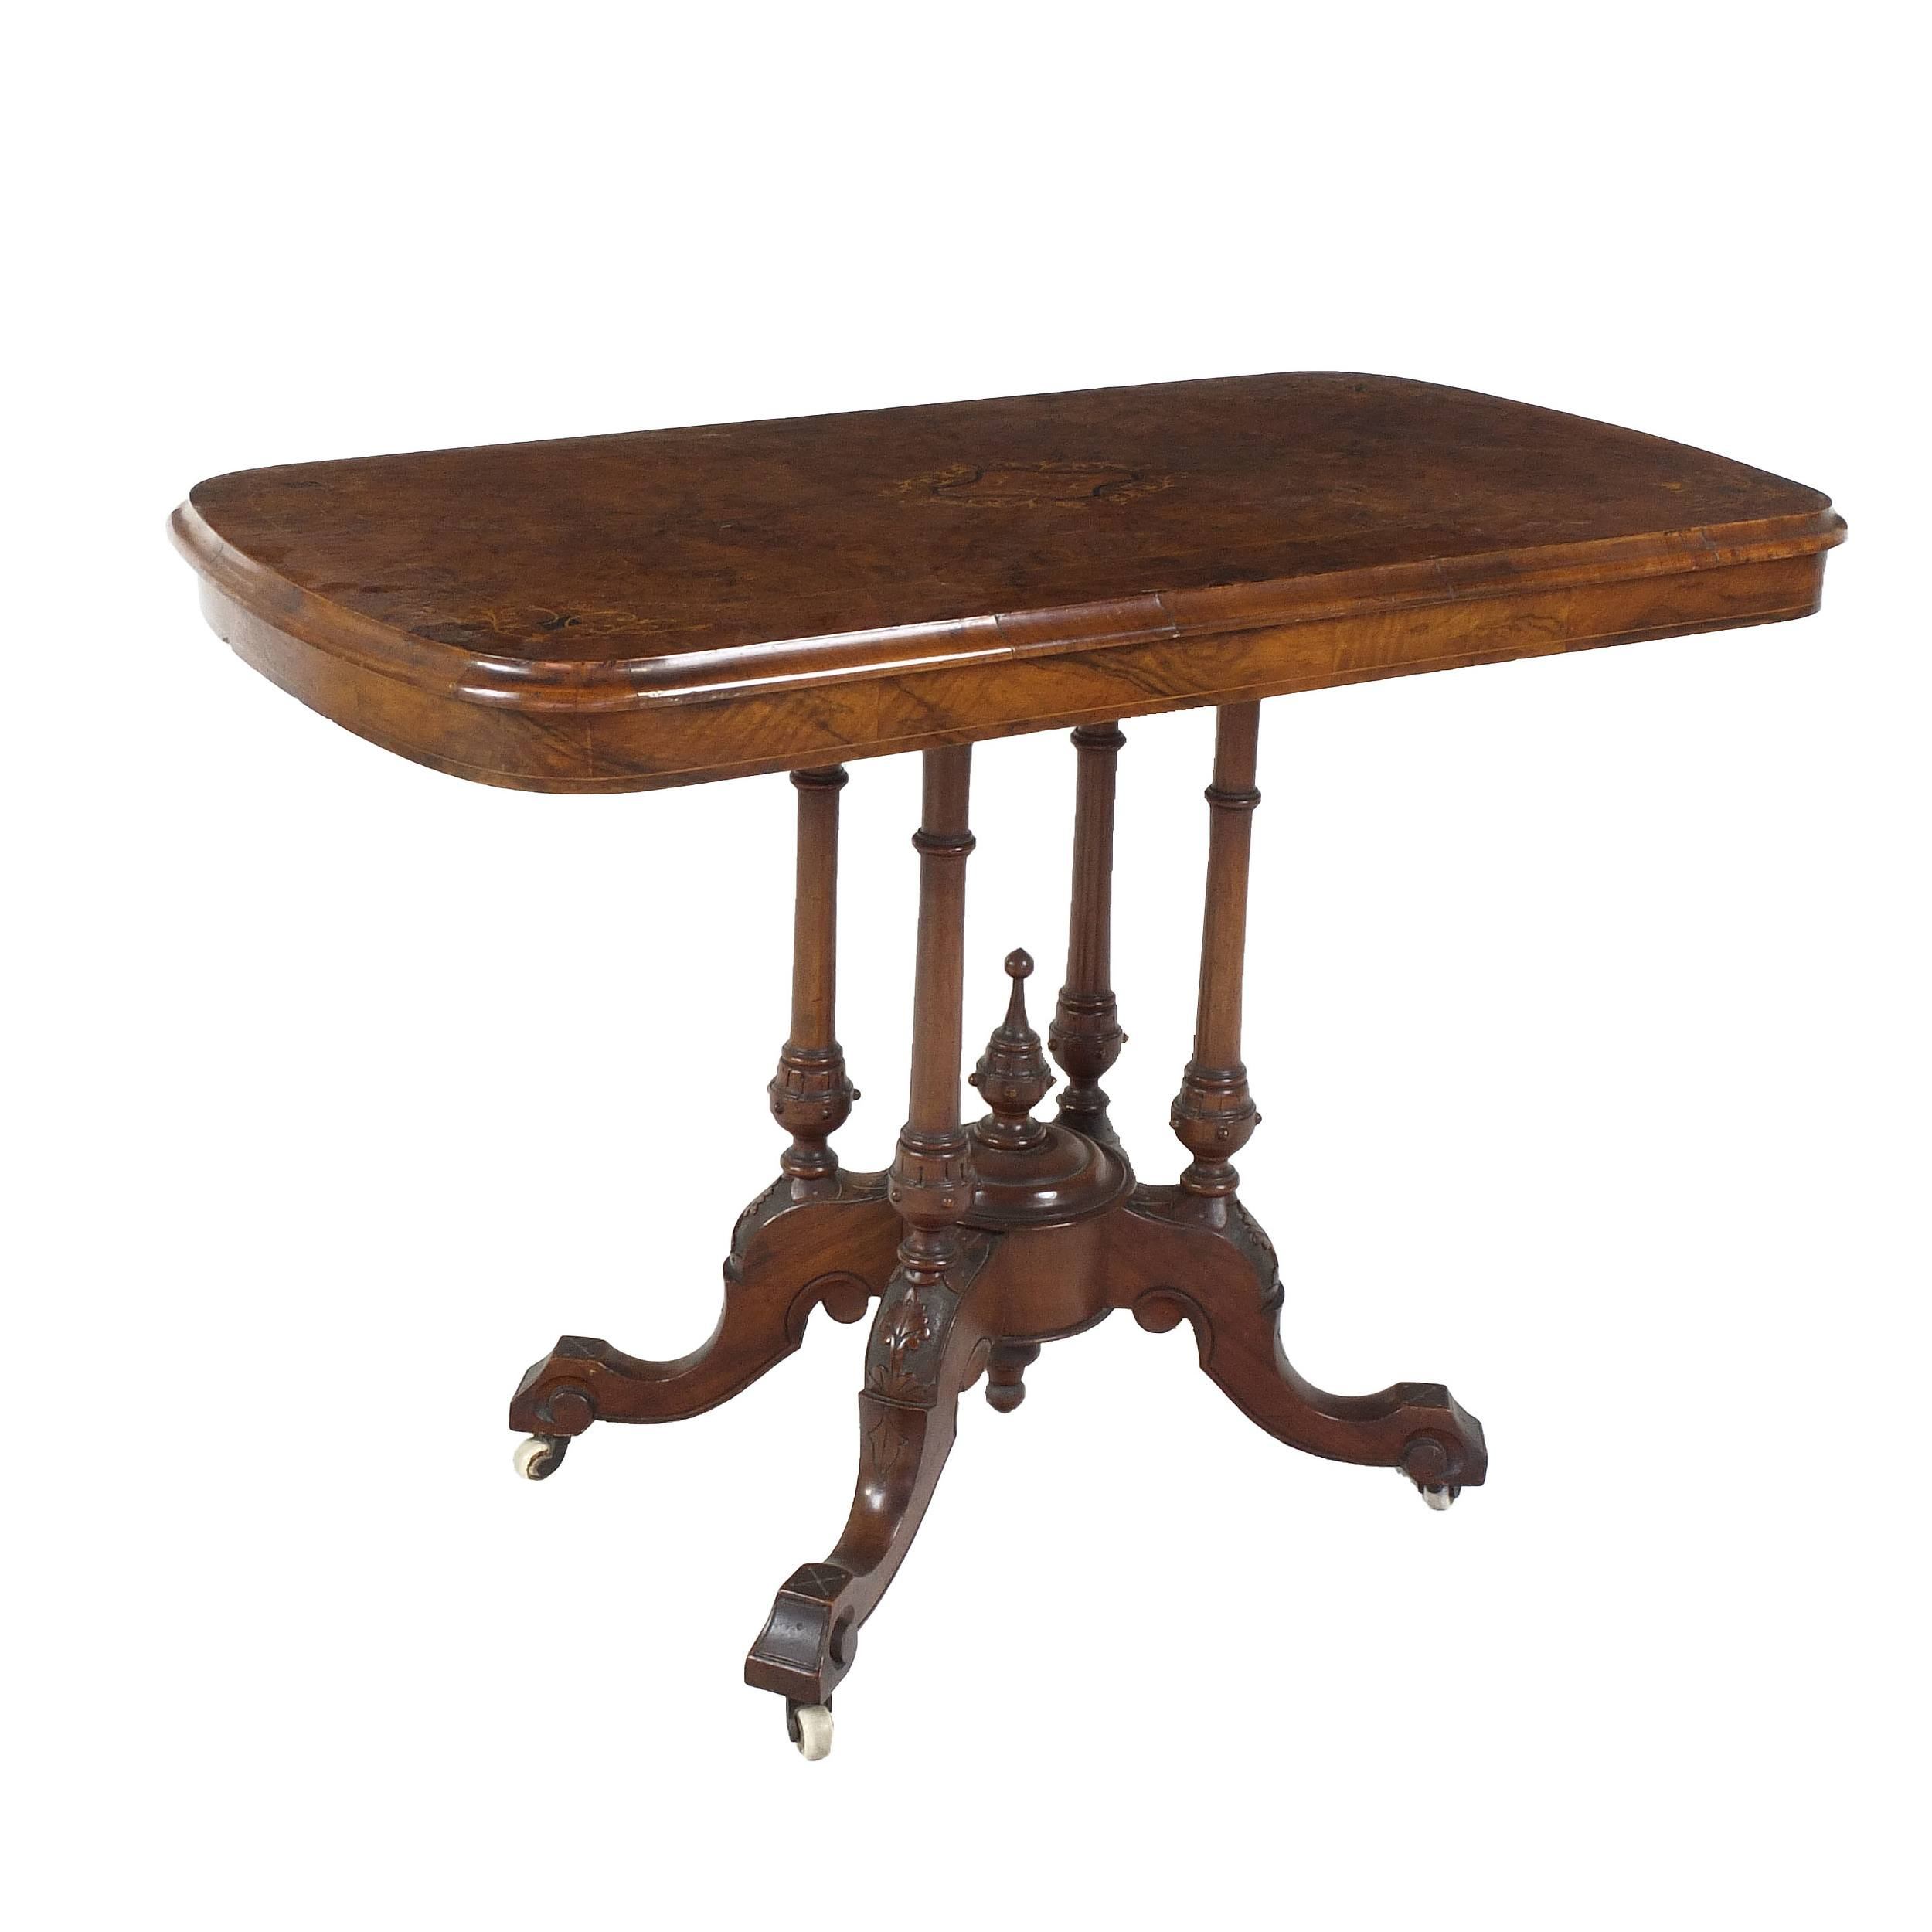 'Victorian English Walnut Loo Table with Inlaid Top Circa 1880'